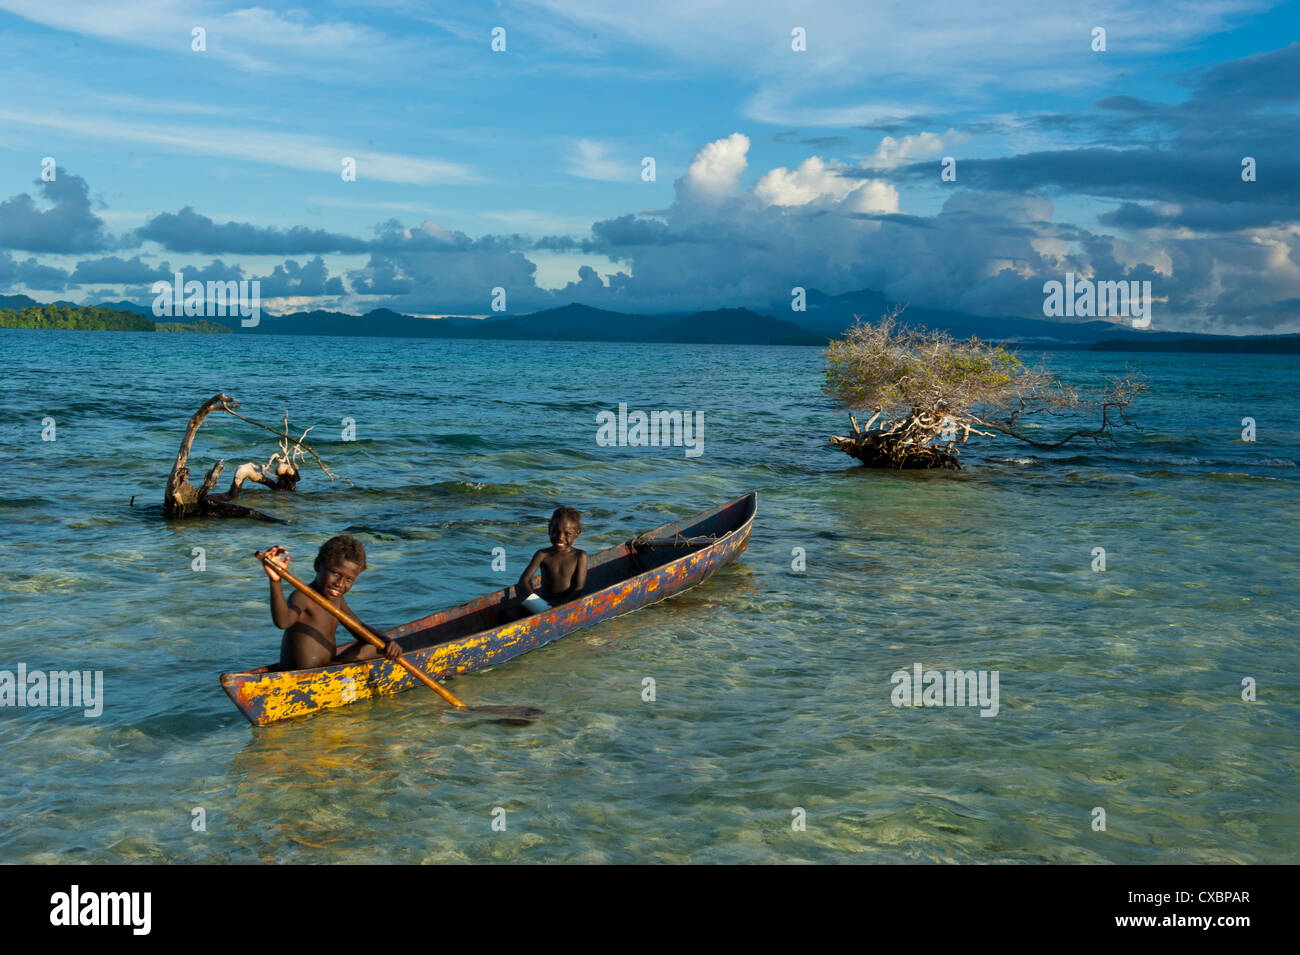 Young boys fishing in the Marovo Lagoon below dramatic clouds, Solomon Islands, Pacific - Stock Image